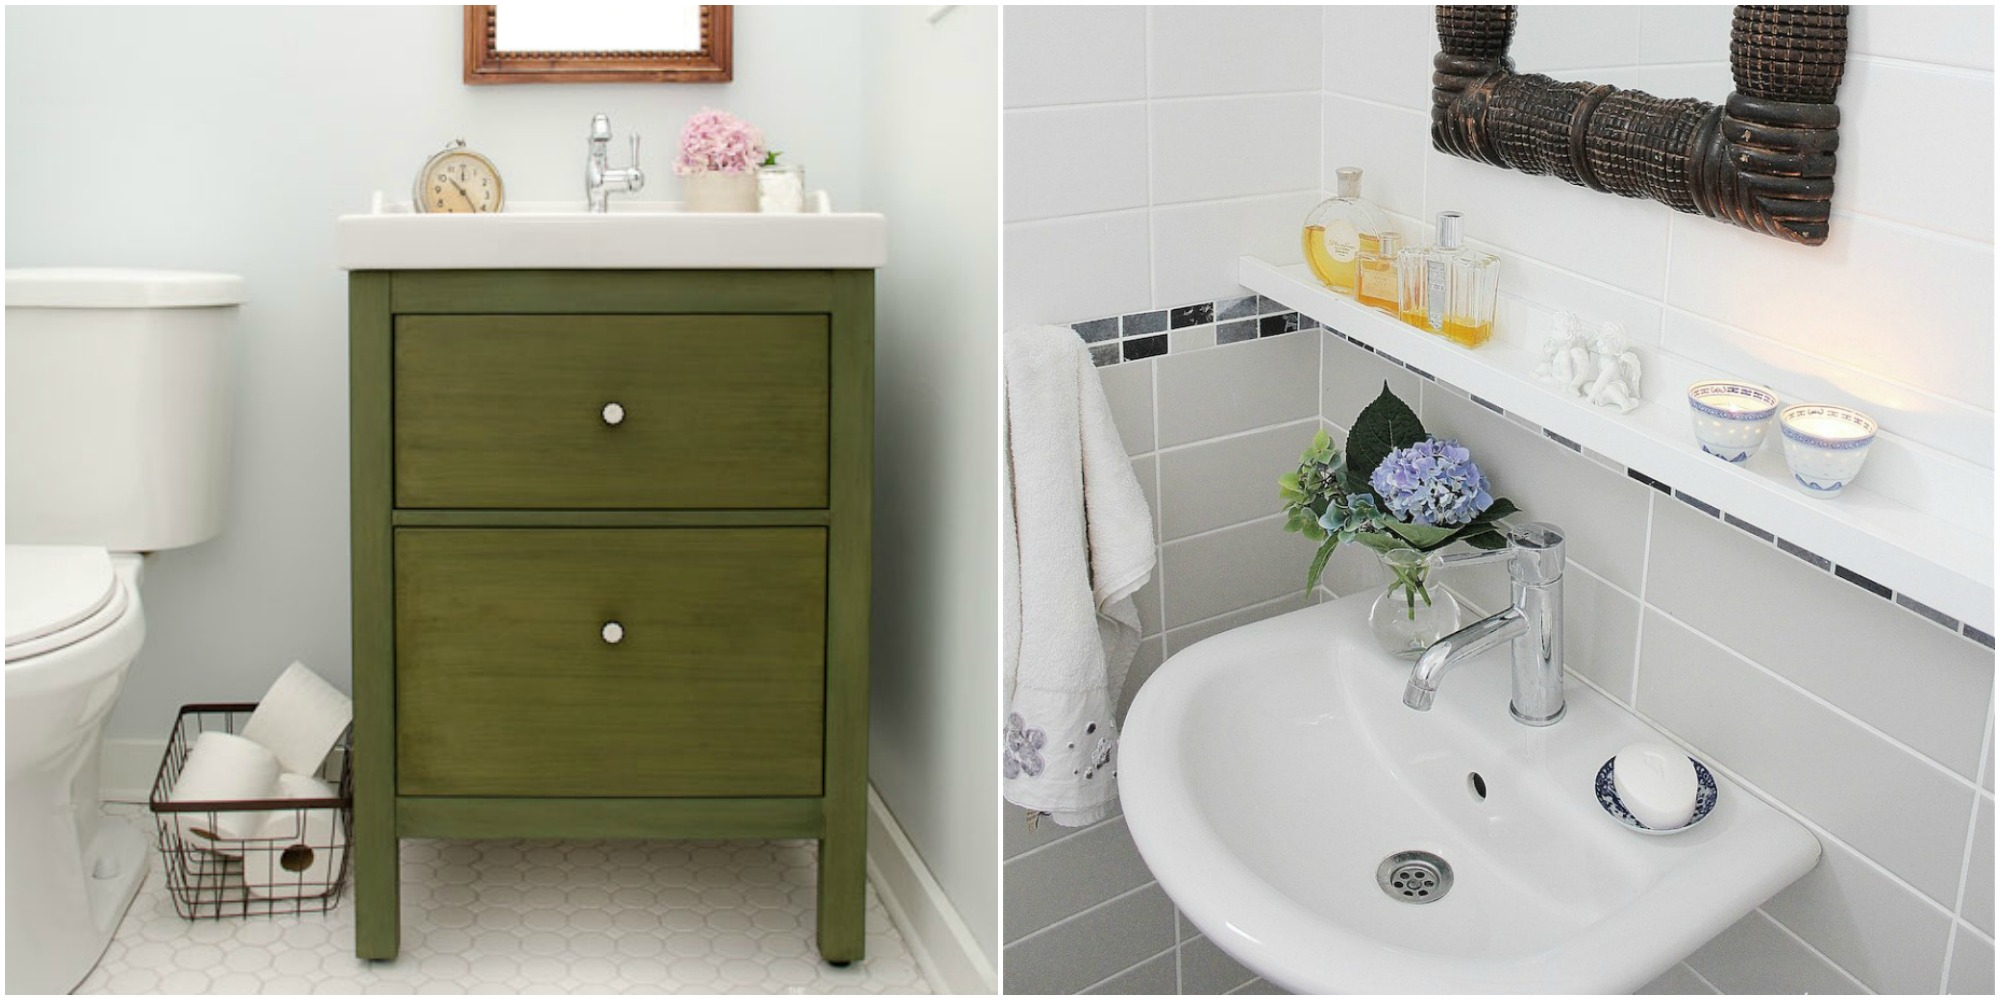 11 ikea bathroom hacks new uses for ikea items in the bathroom - Ikea bathrooms images ...